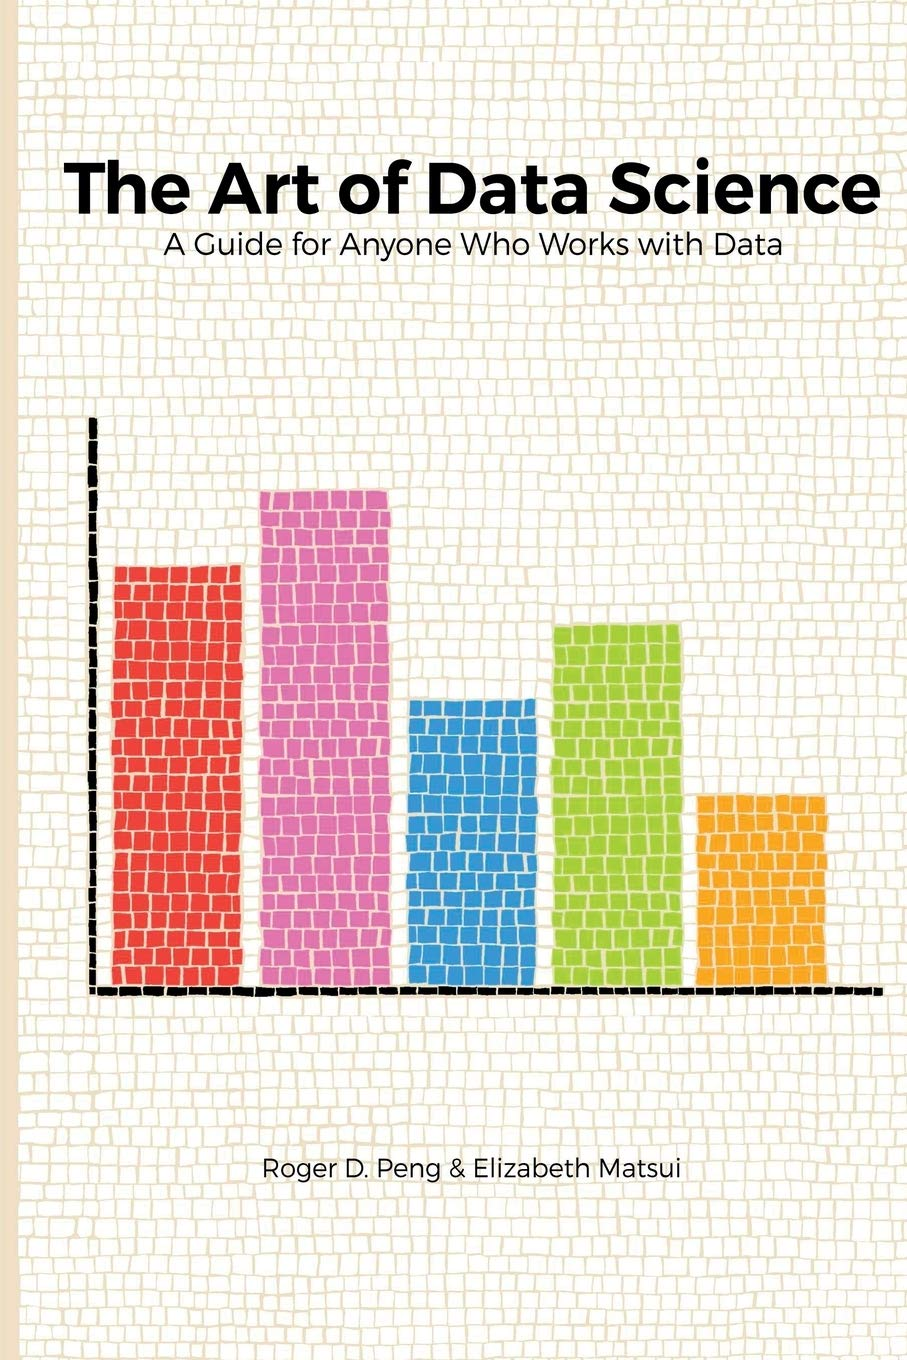 "<a href=""https://books.google.fr/books/about/The_Art_of_Data_Science.html?id=ZDH9DAEACAAJ&amp;source=kp_book_description&amp;redir_esc=y"" target=""_blank"" rel=""noopener noreferrer nofollow"">Источник</a>"